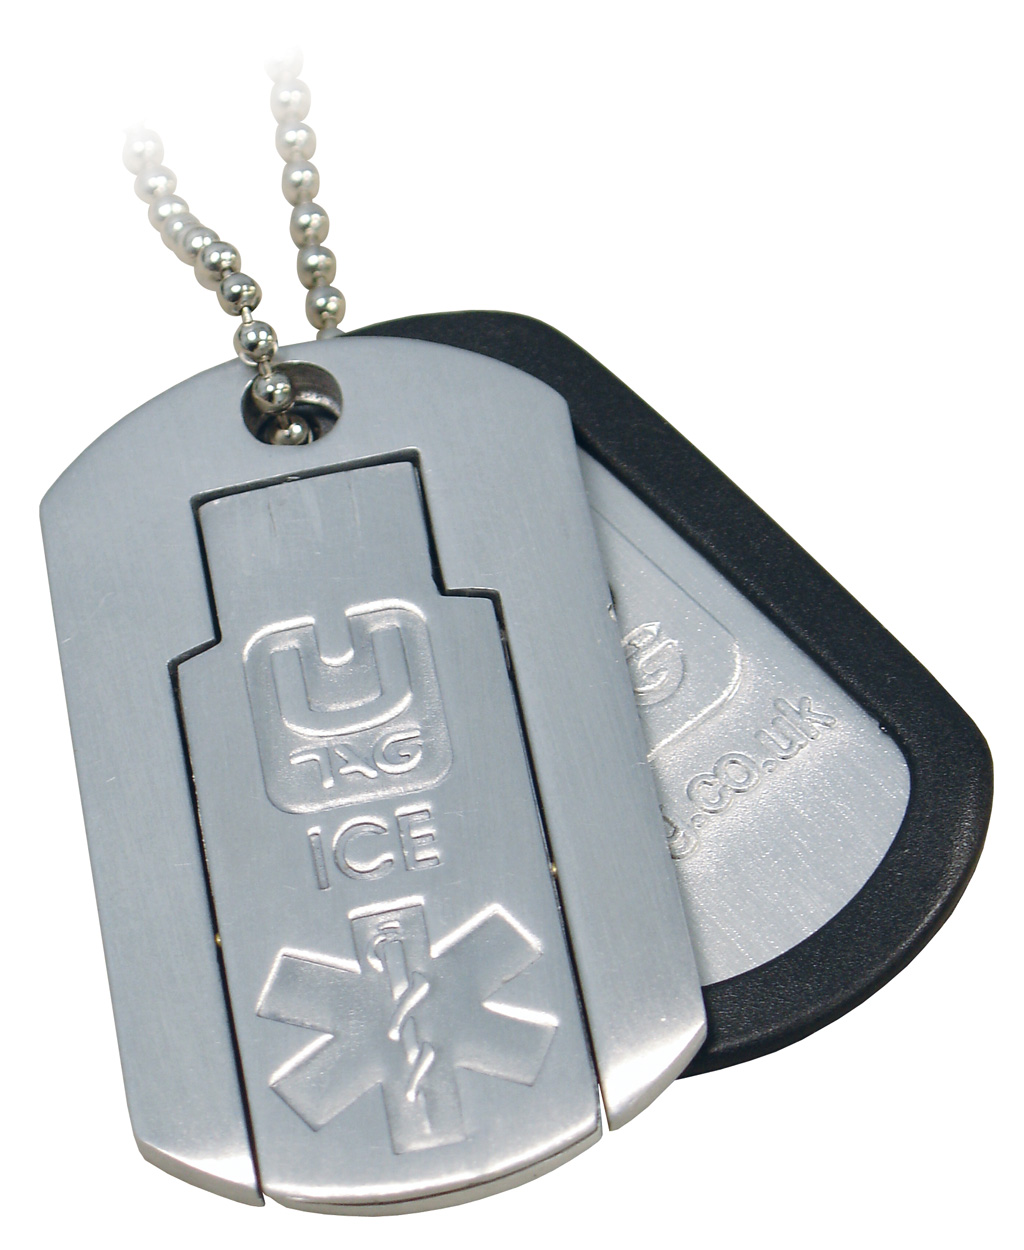 Usb Medical Alert Id Dog Tag Necklacethe Utag Ice In Case Of Emergency Can Be A Lifesaver As It Quickly Provides First Responders